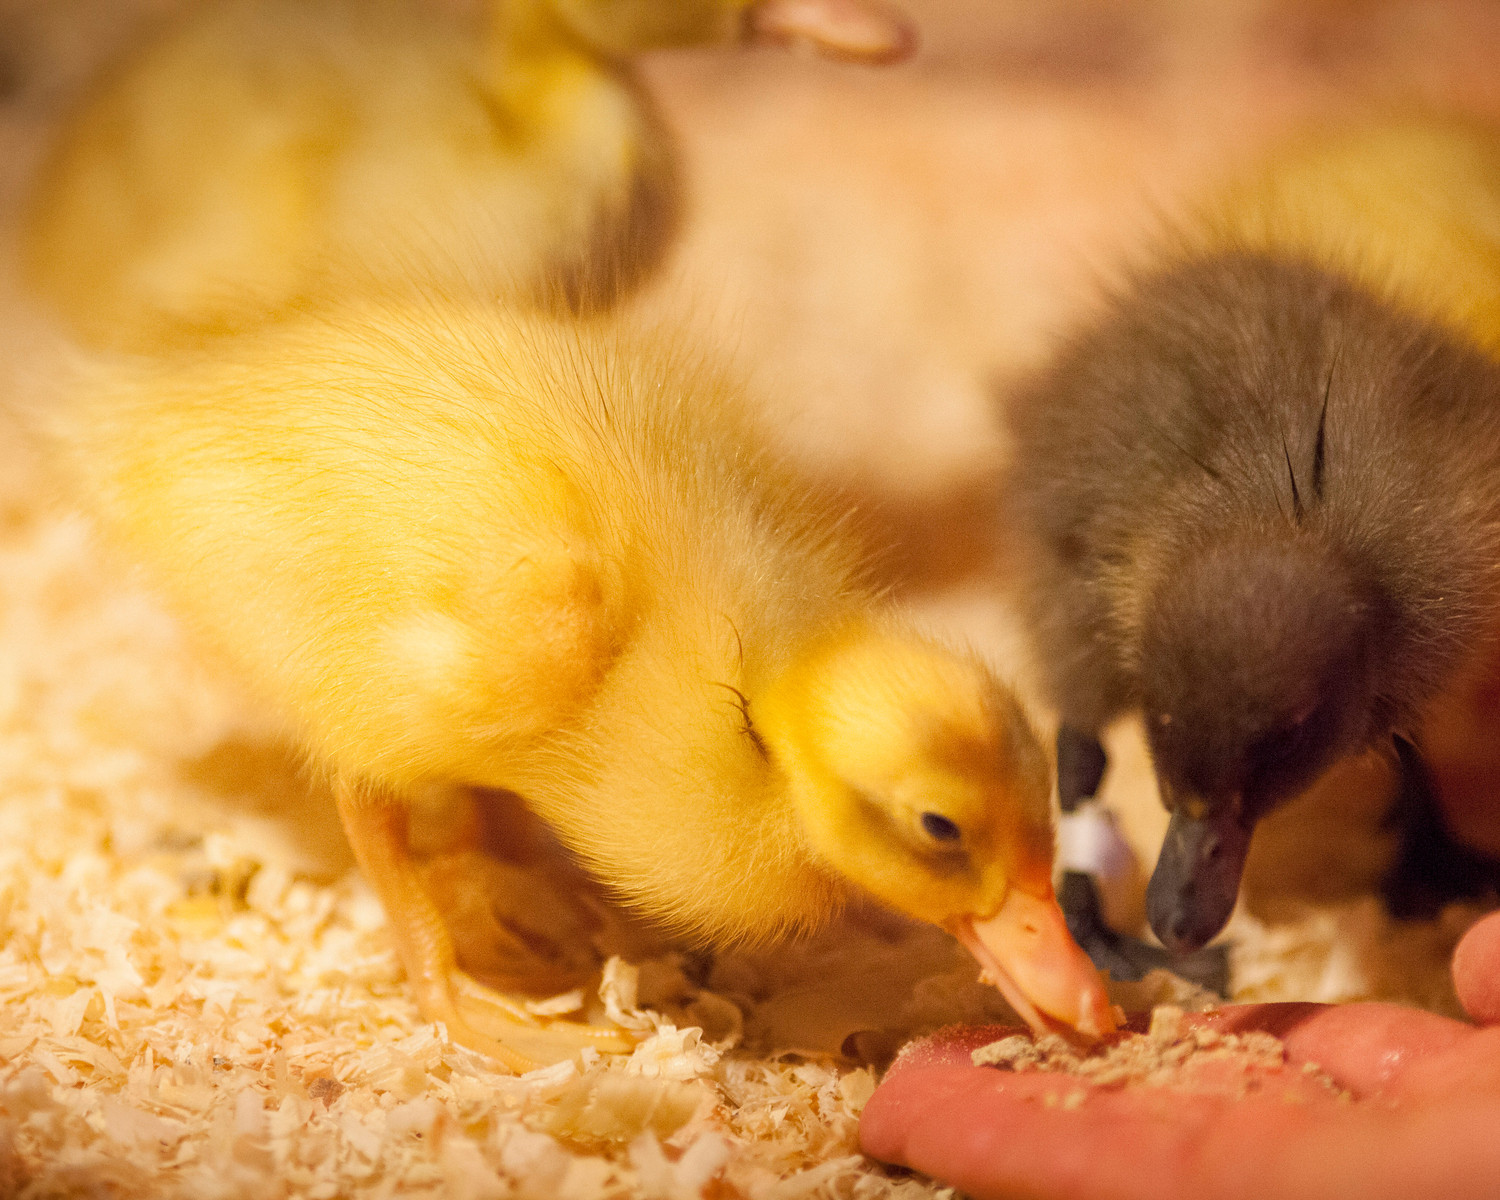 Donate  $15to feedour ducks for a week!